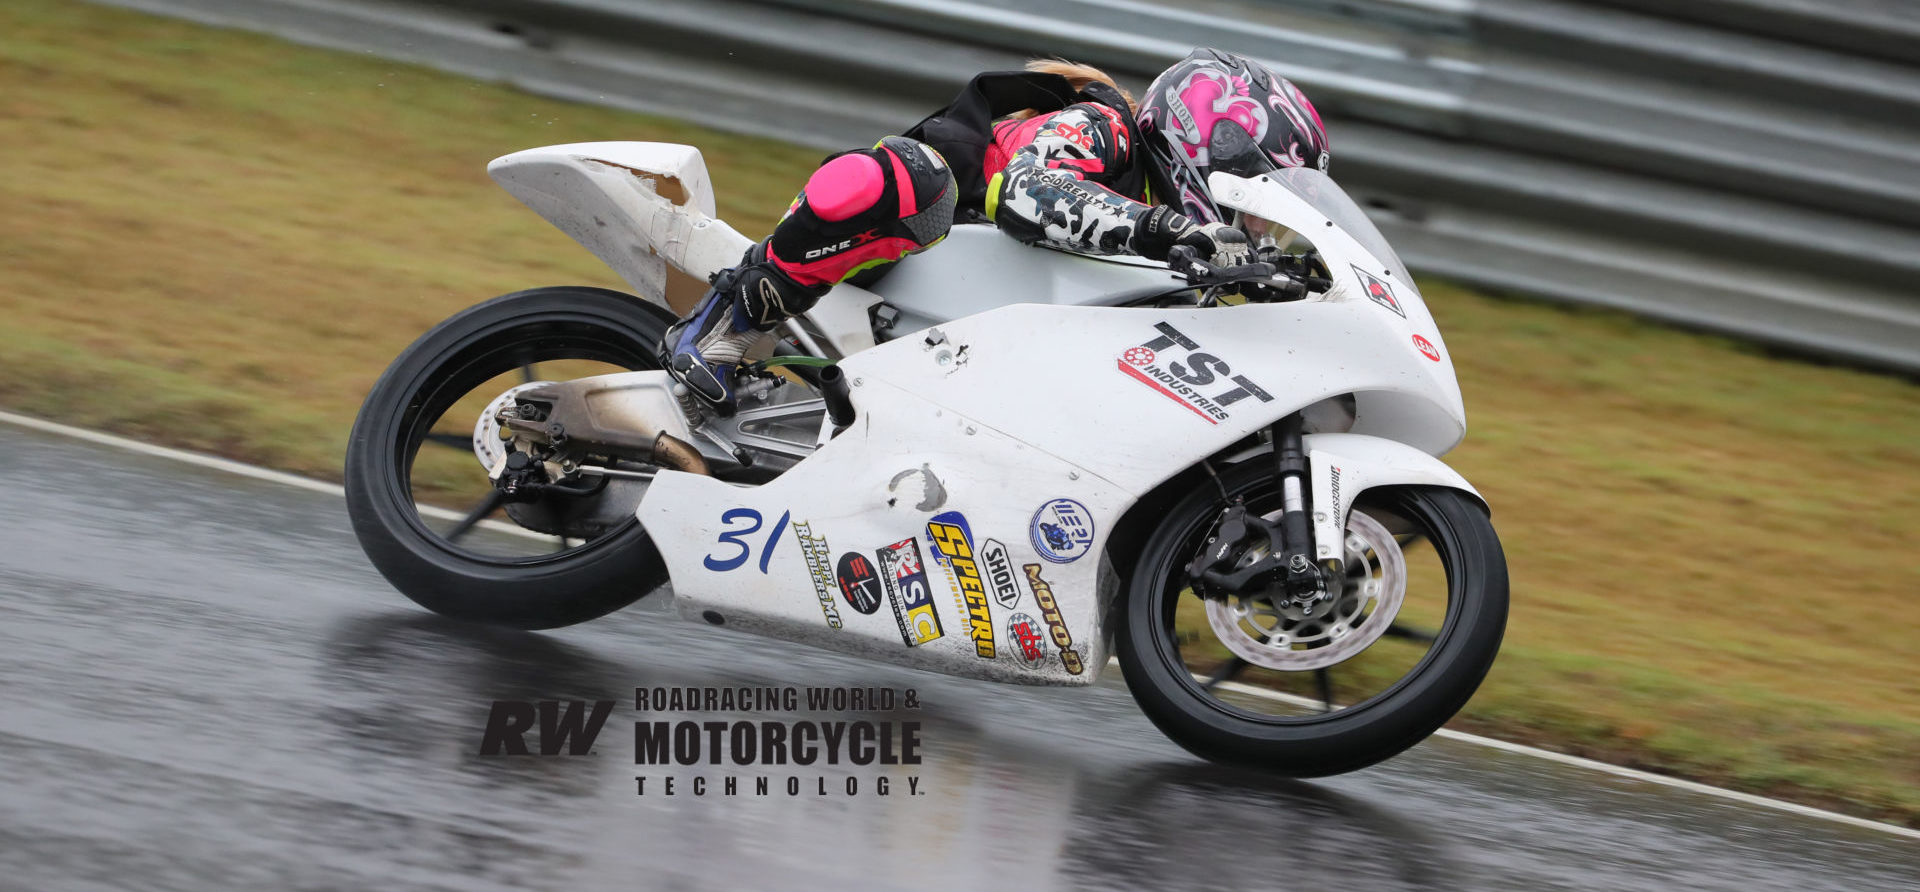 Kayla Yaakov (31), age 12, in action on her Honda NSF250R Friday at Barber Motorsports Park. Photo by Brian J. Nelson.